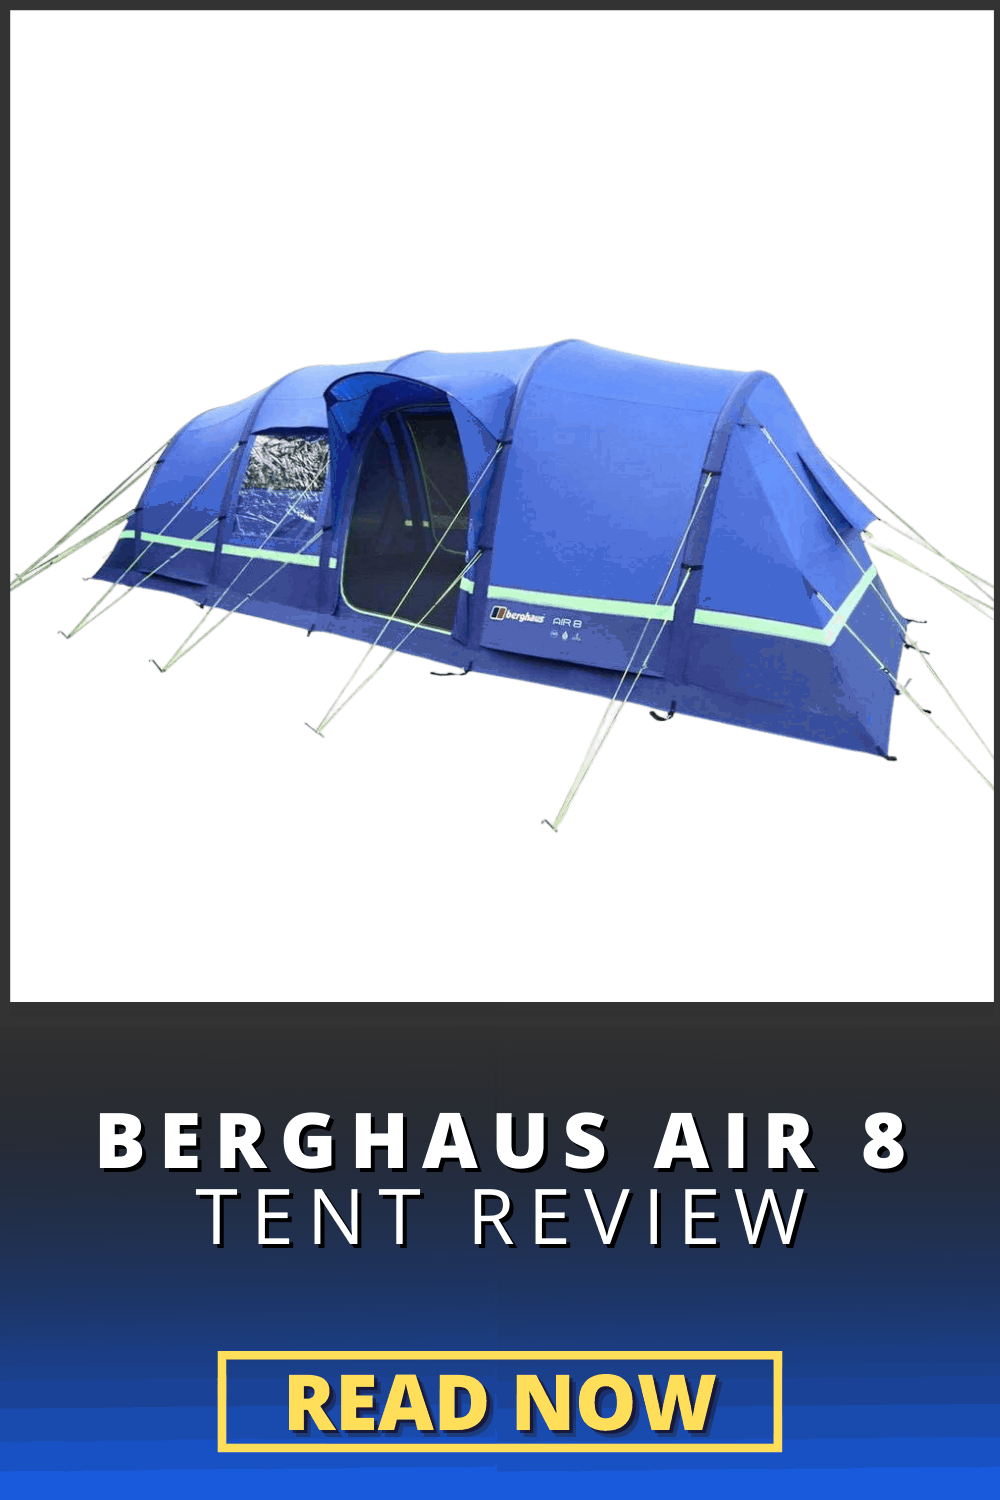 Berghaus Air 8